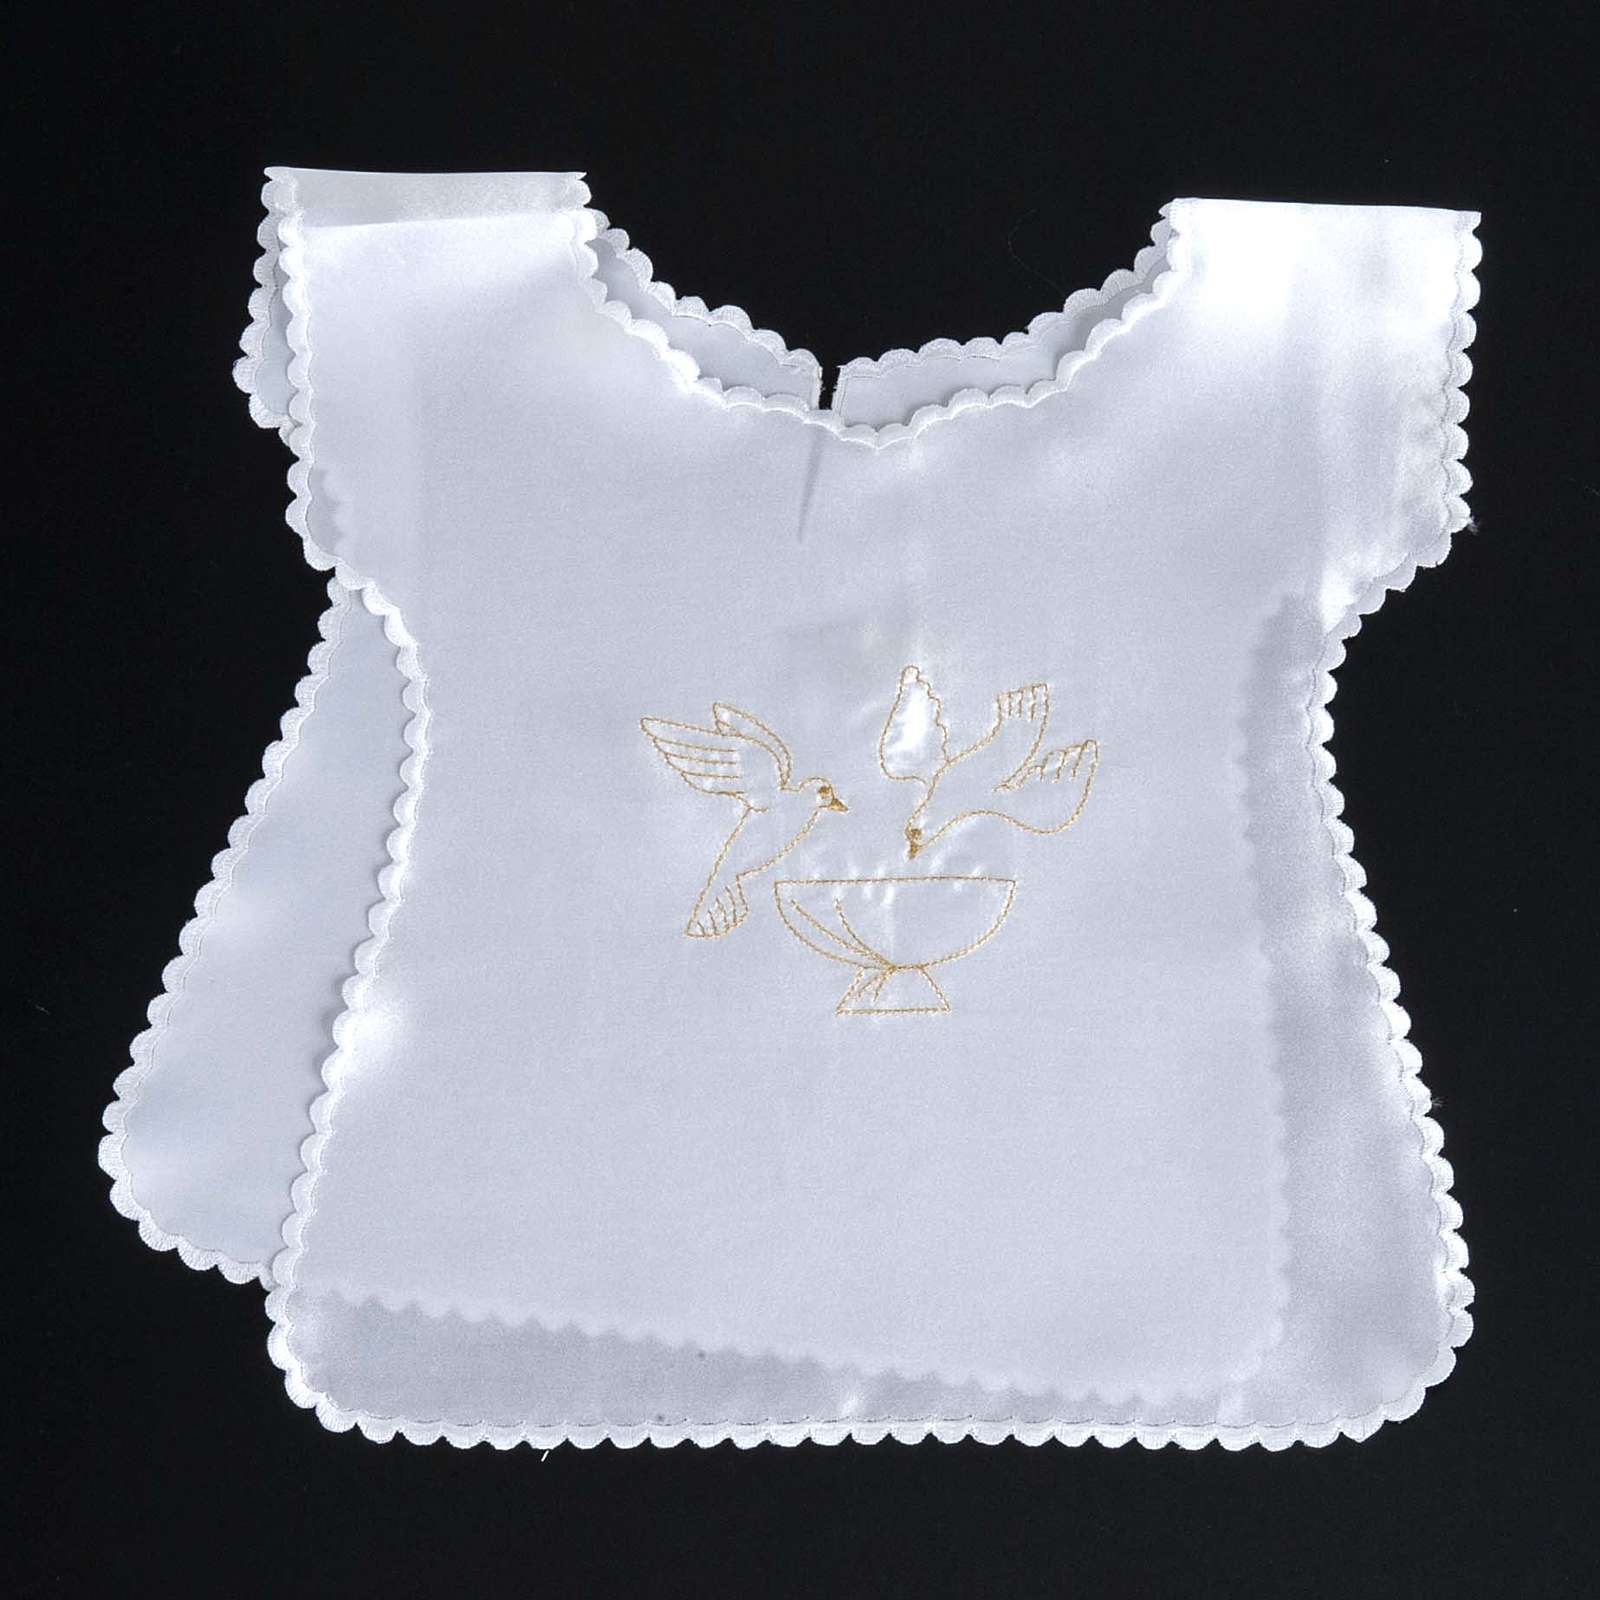 Baptismal gown in satin, doves and baptismal font 4